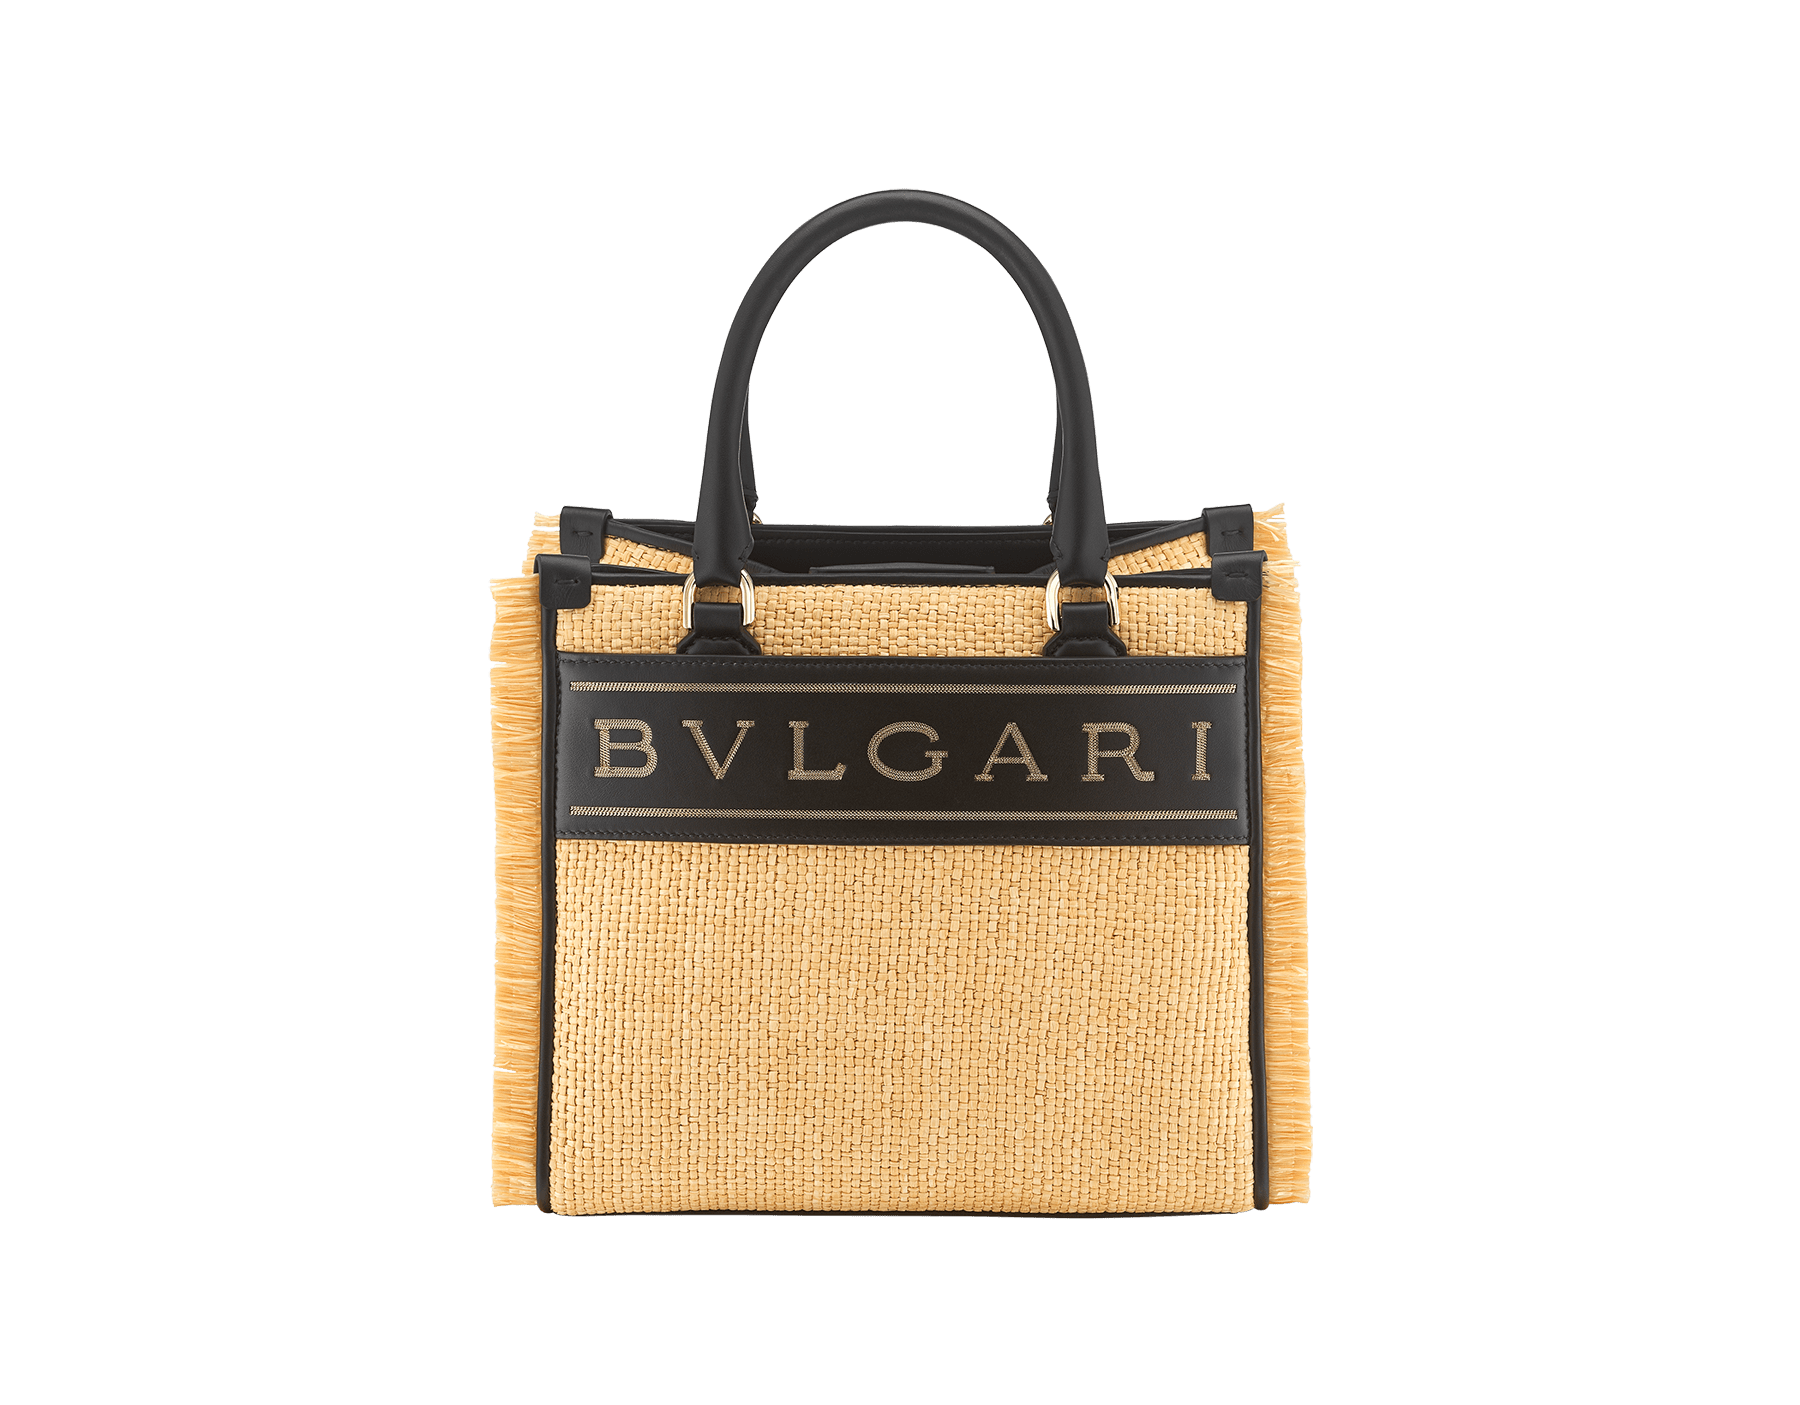 """Bvlgari Logo"" tote bag in beige raffia enhanced with beige raffia fringes, and black grosgrain internal lining. Bvlgari logo featured with chain inserts on the black calf leather. 290953 image 1"